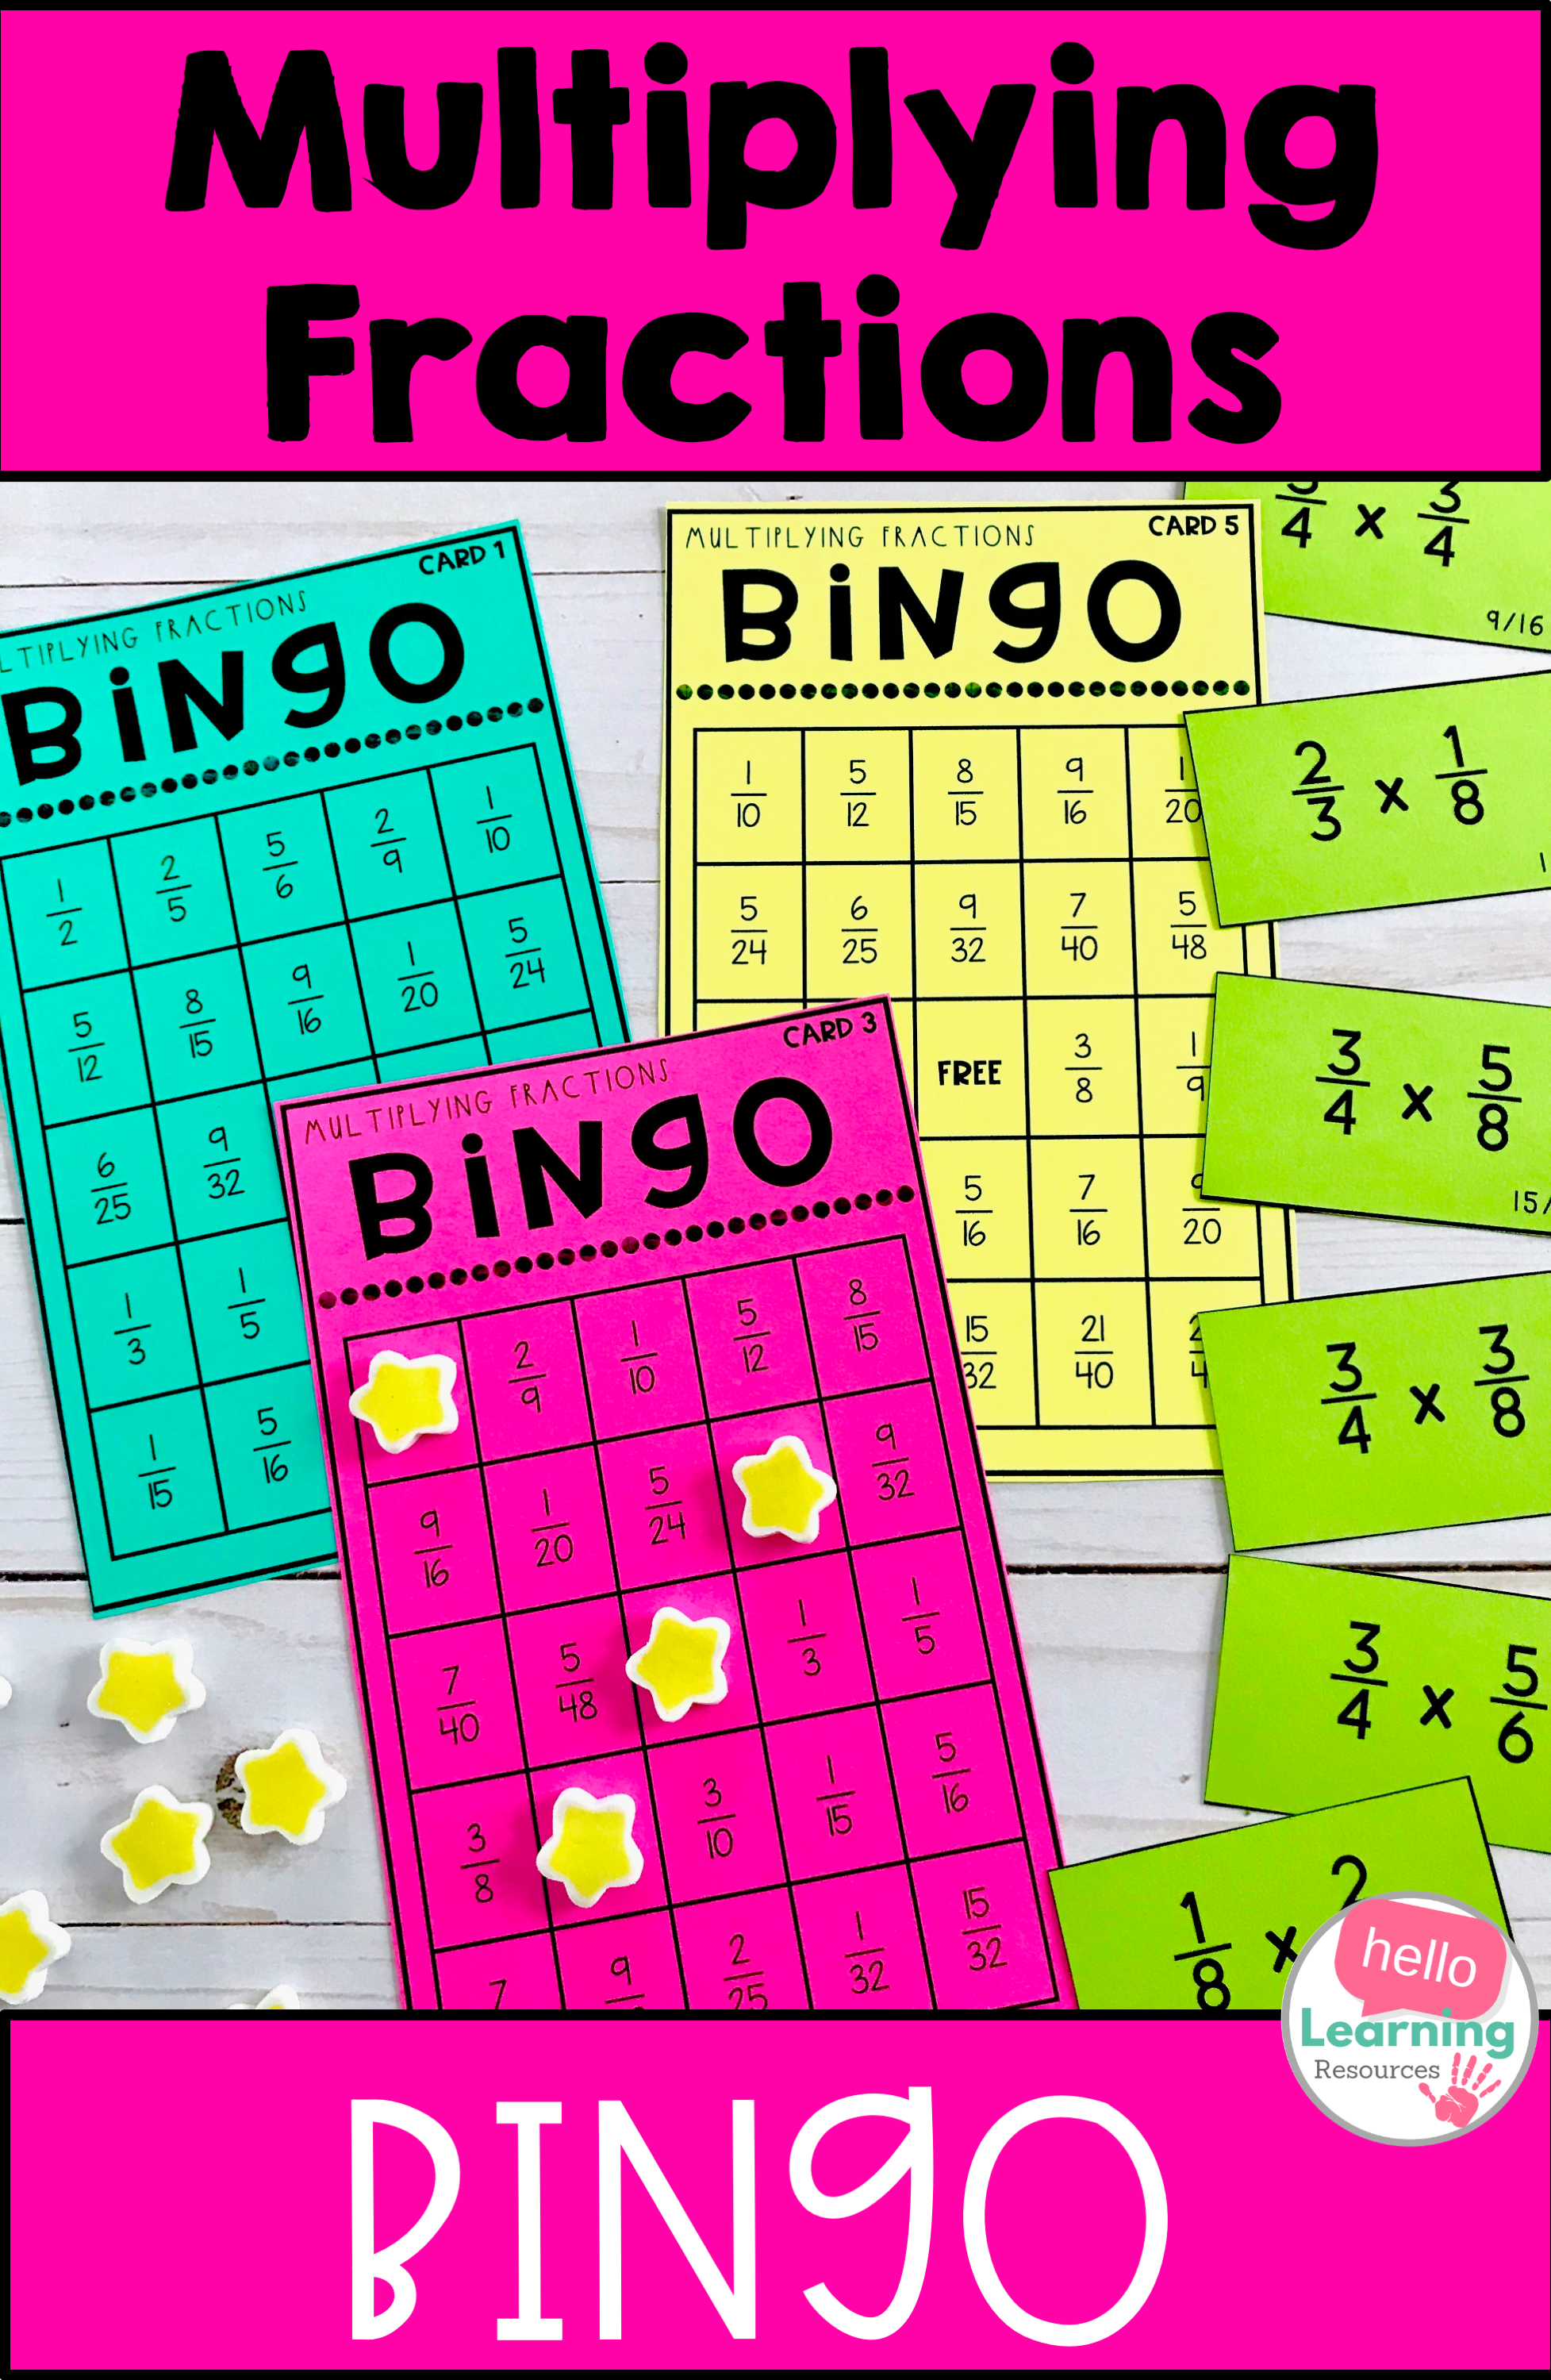 Multiplying Fractions Bingo Game In